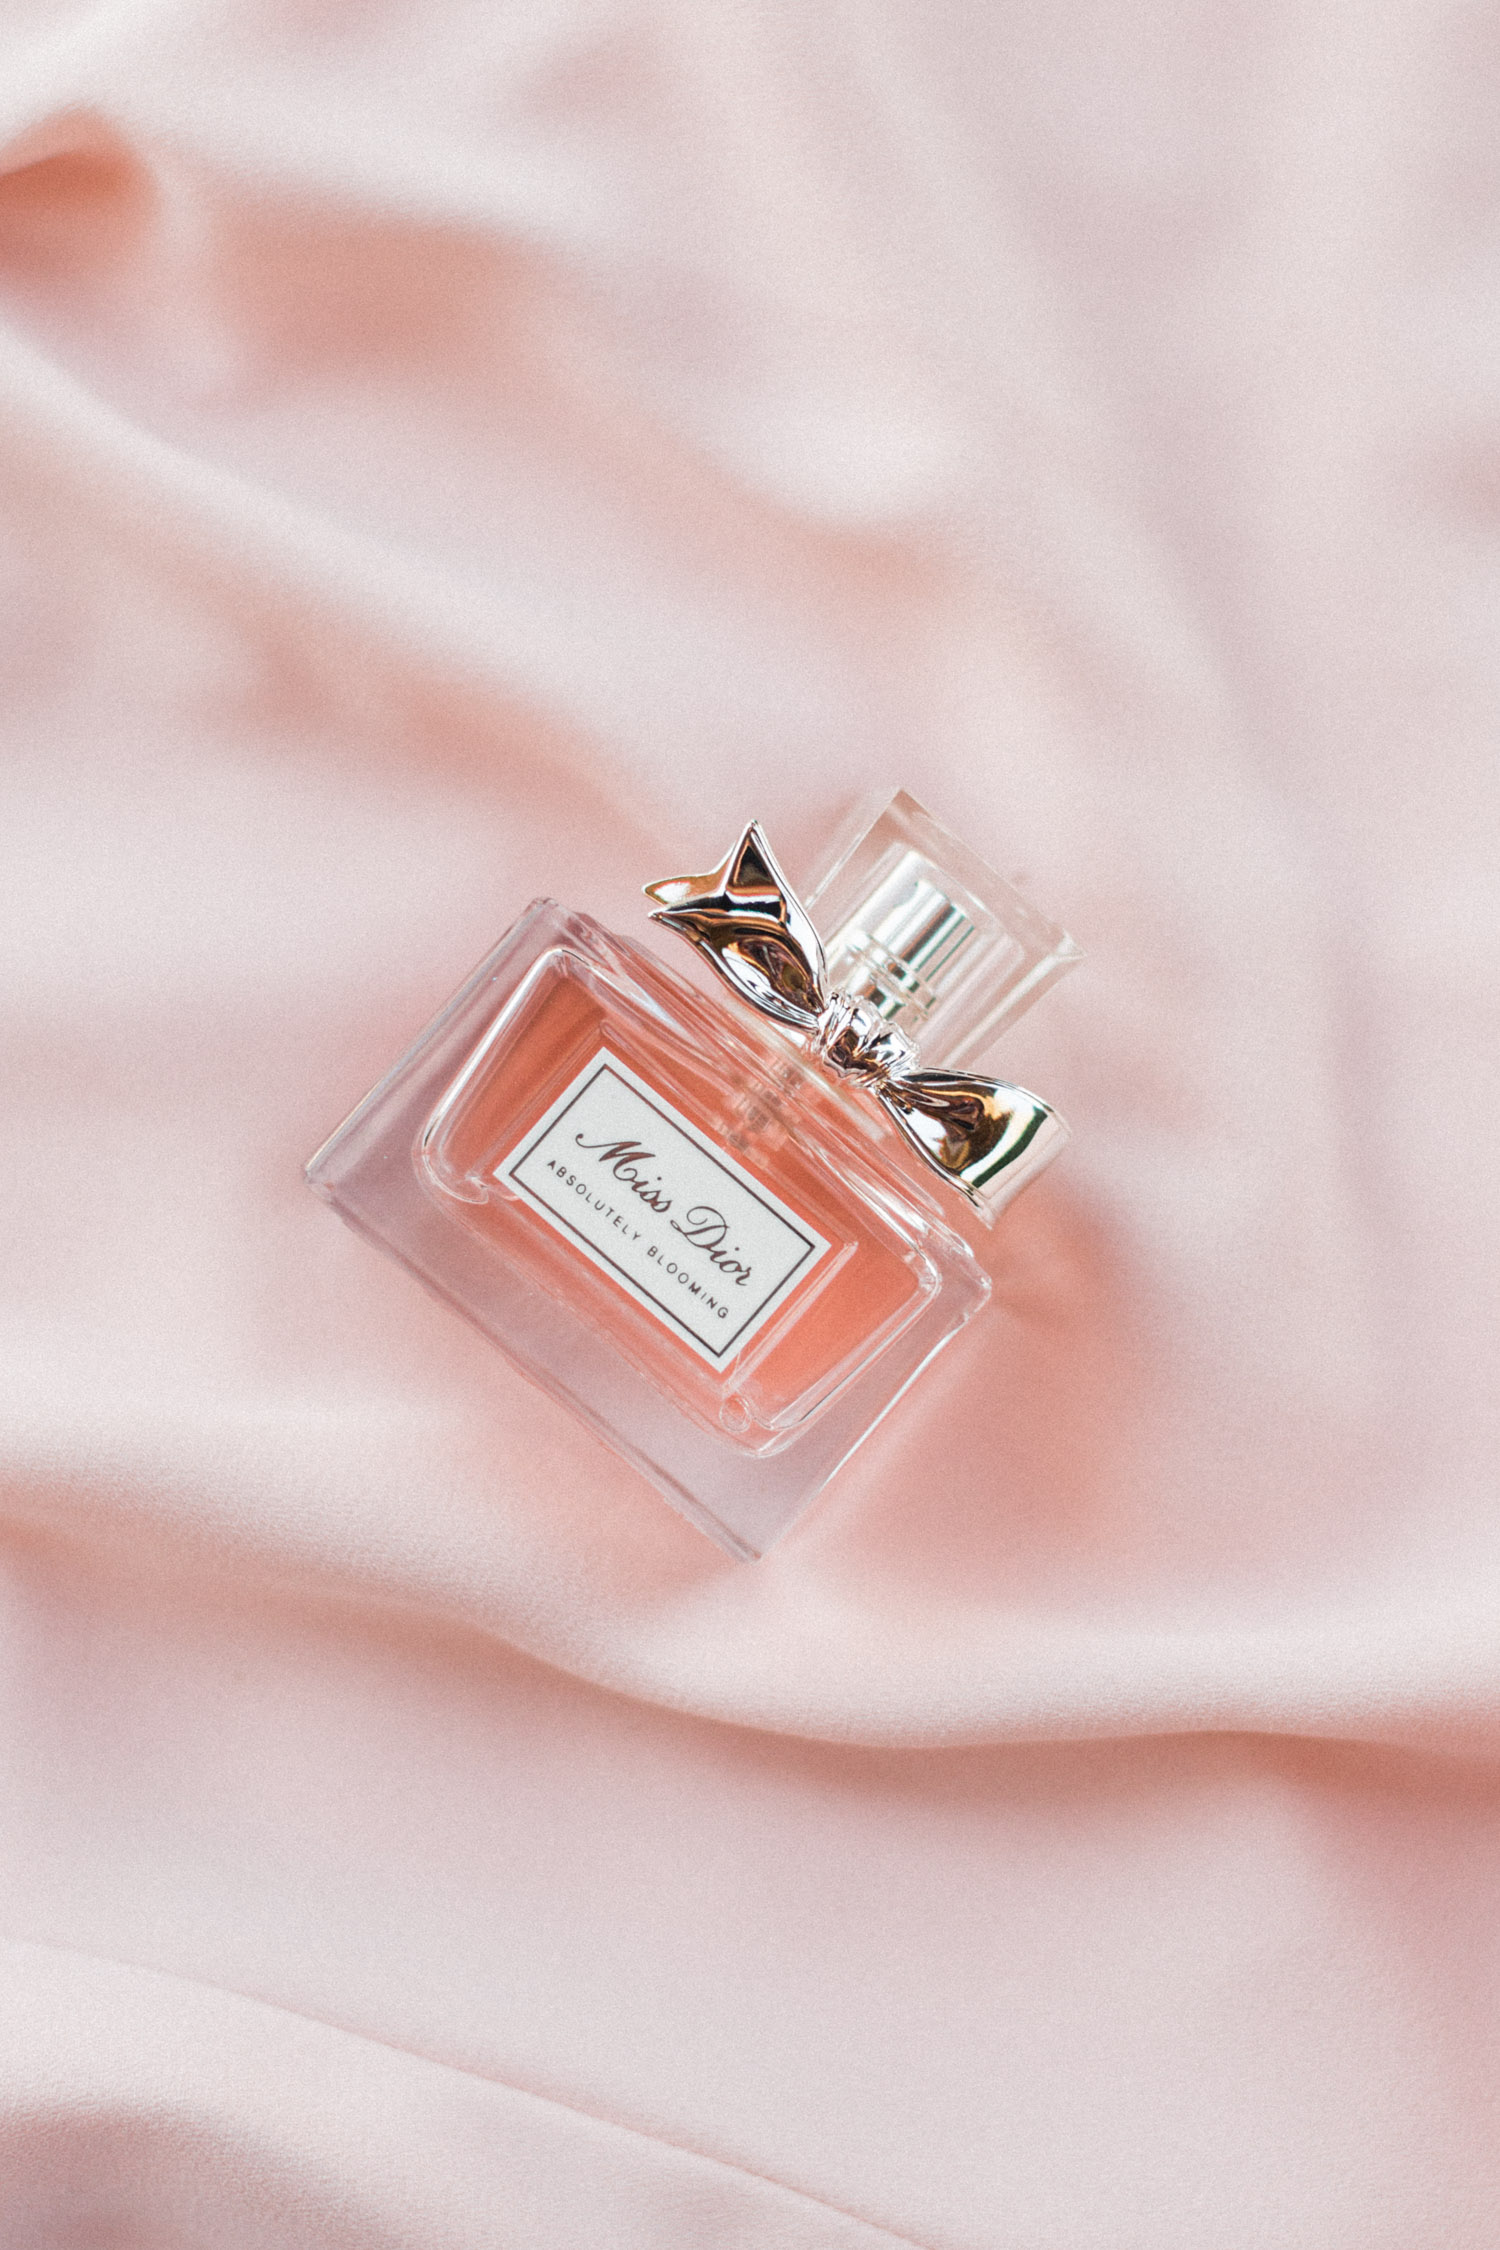 Bride's wedding day perfume